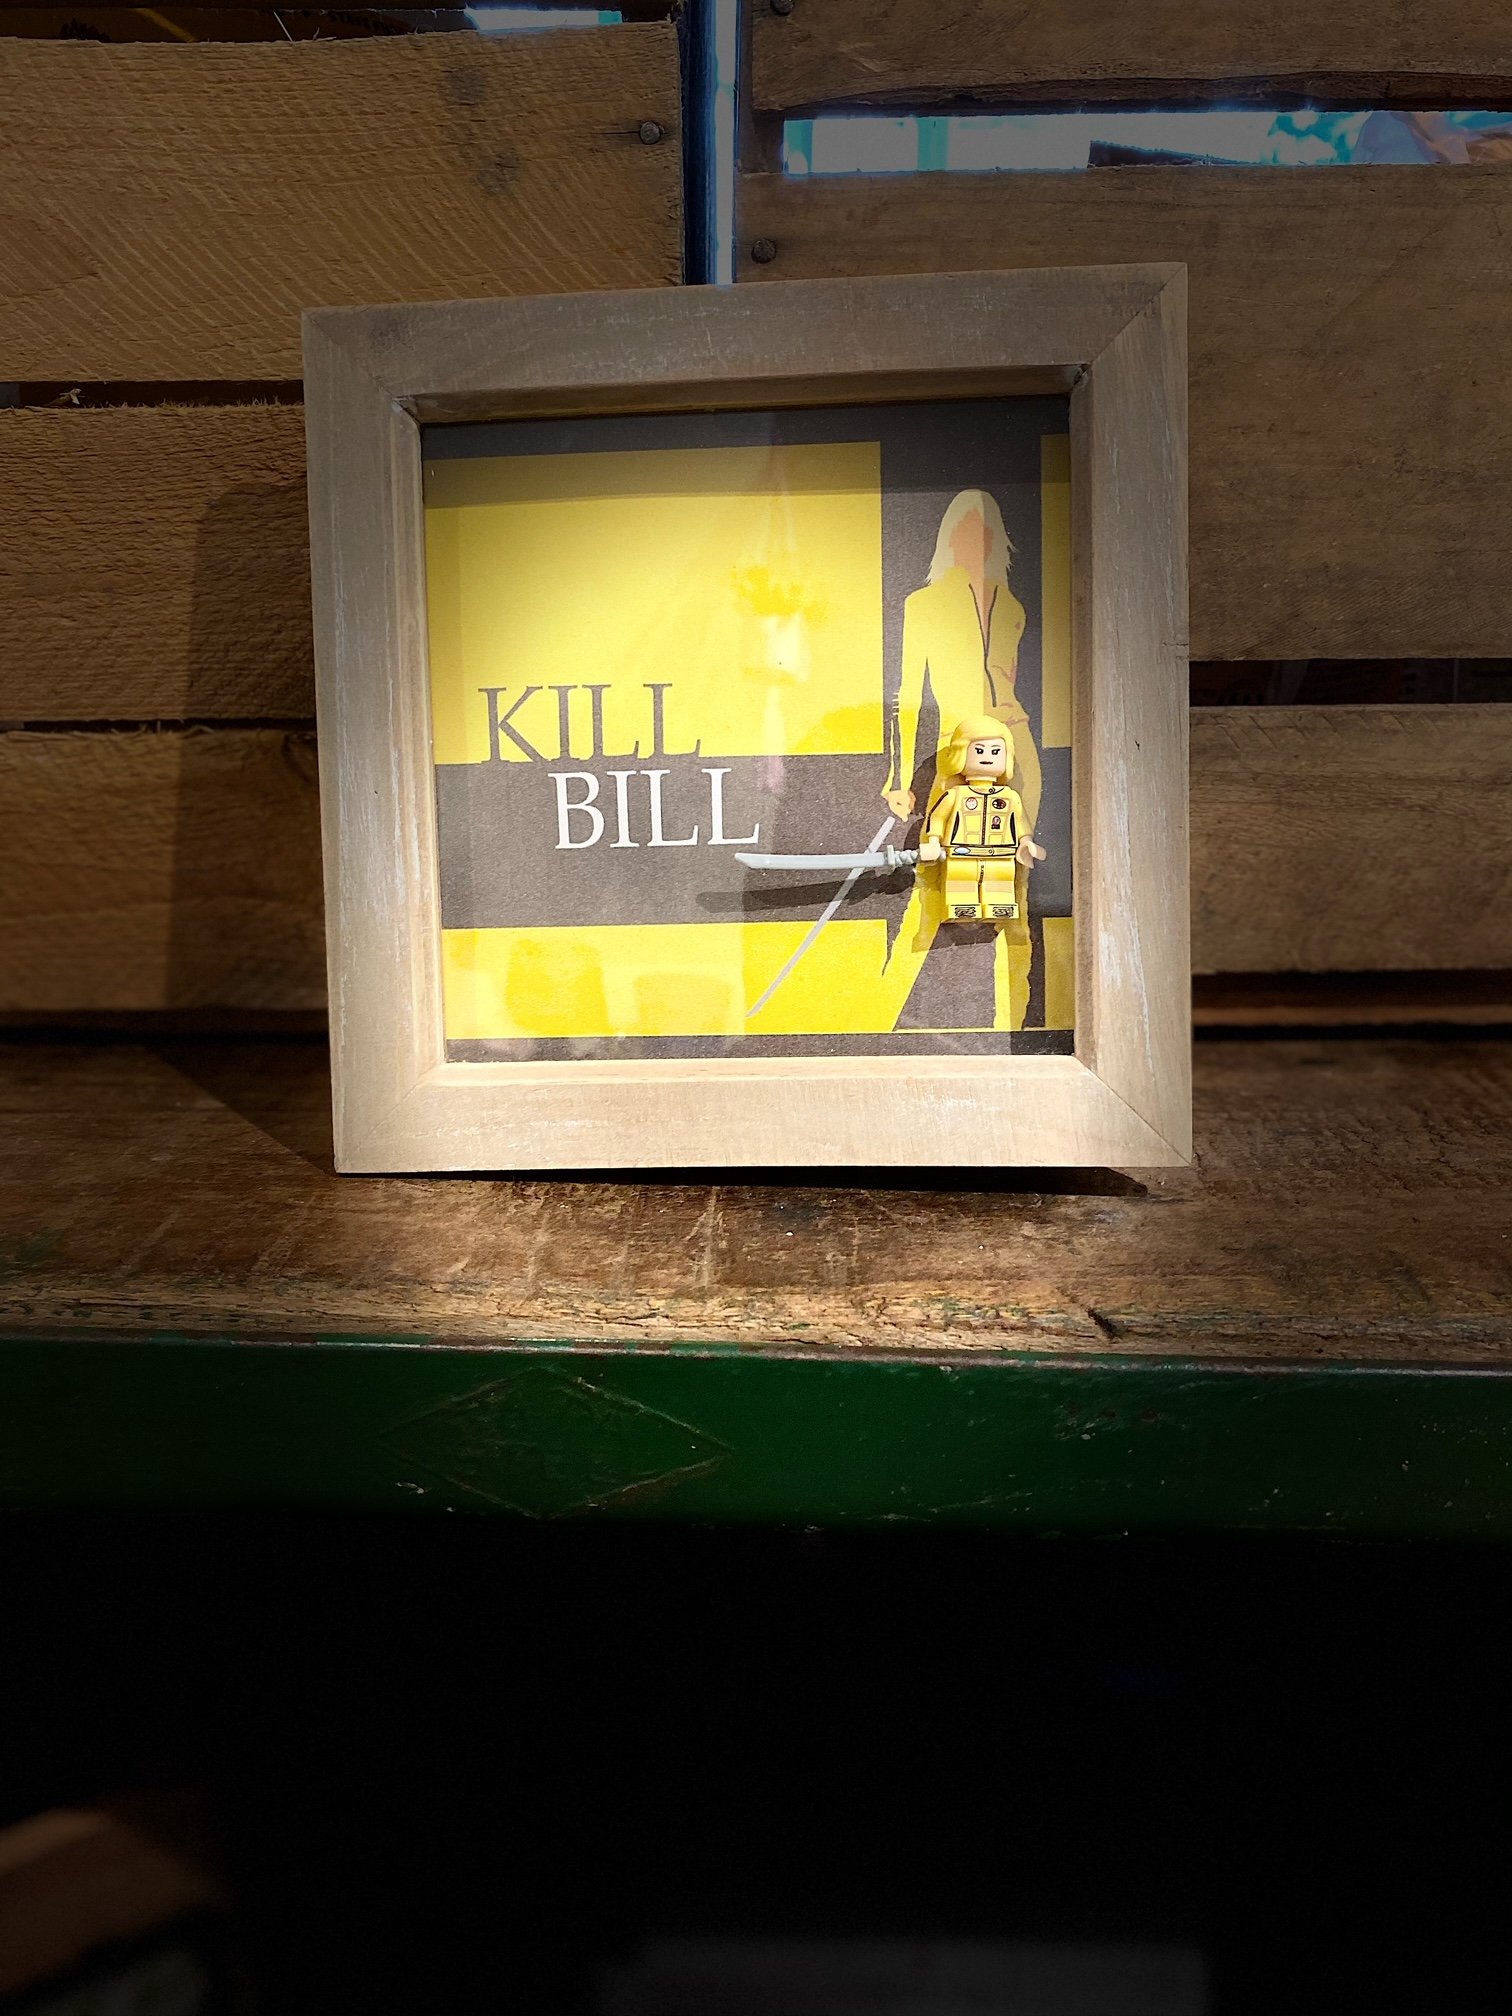 Lego Art - Kill Bill